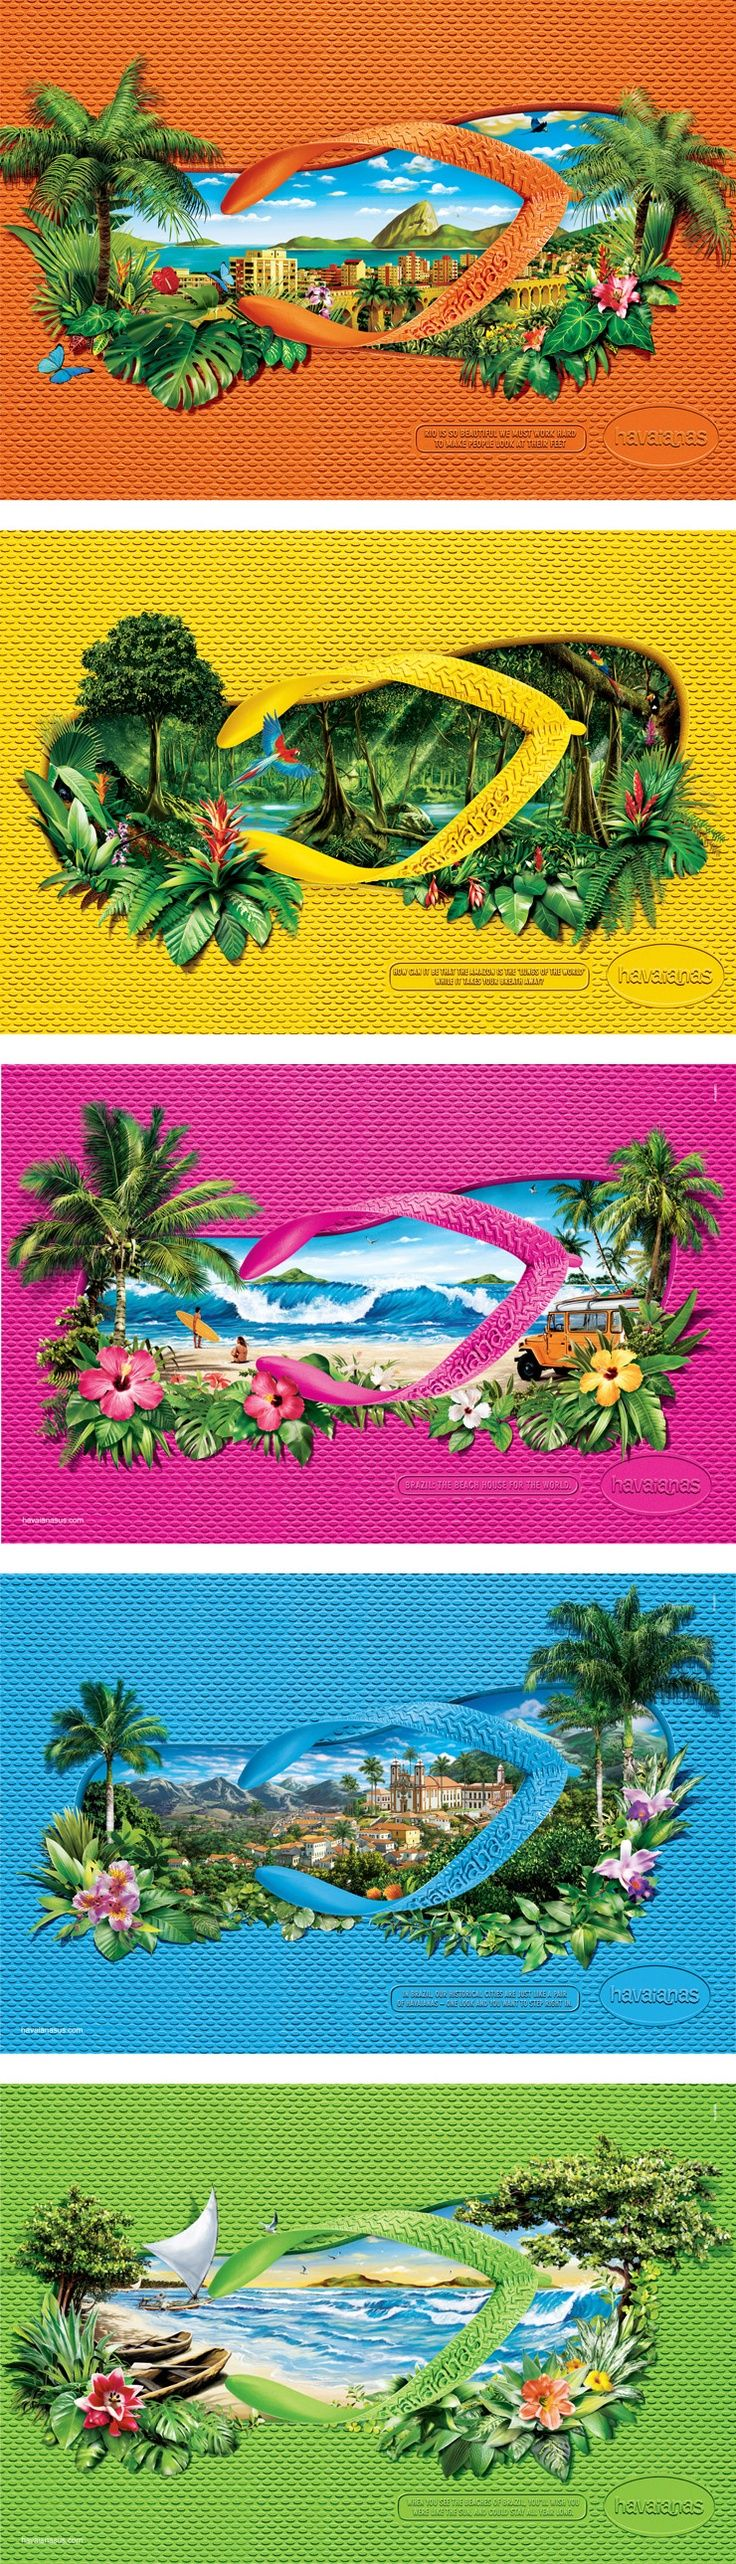 No matter where you go, there will always be a perfect pair of Havaianas for you.